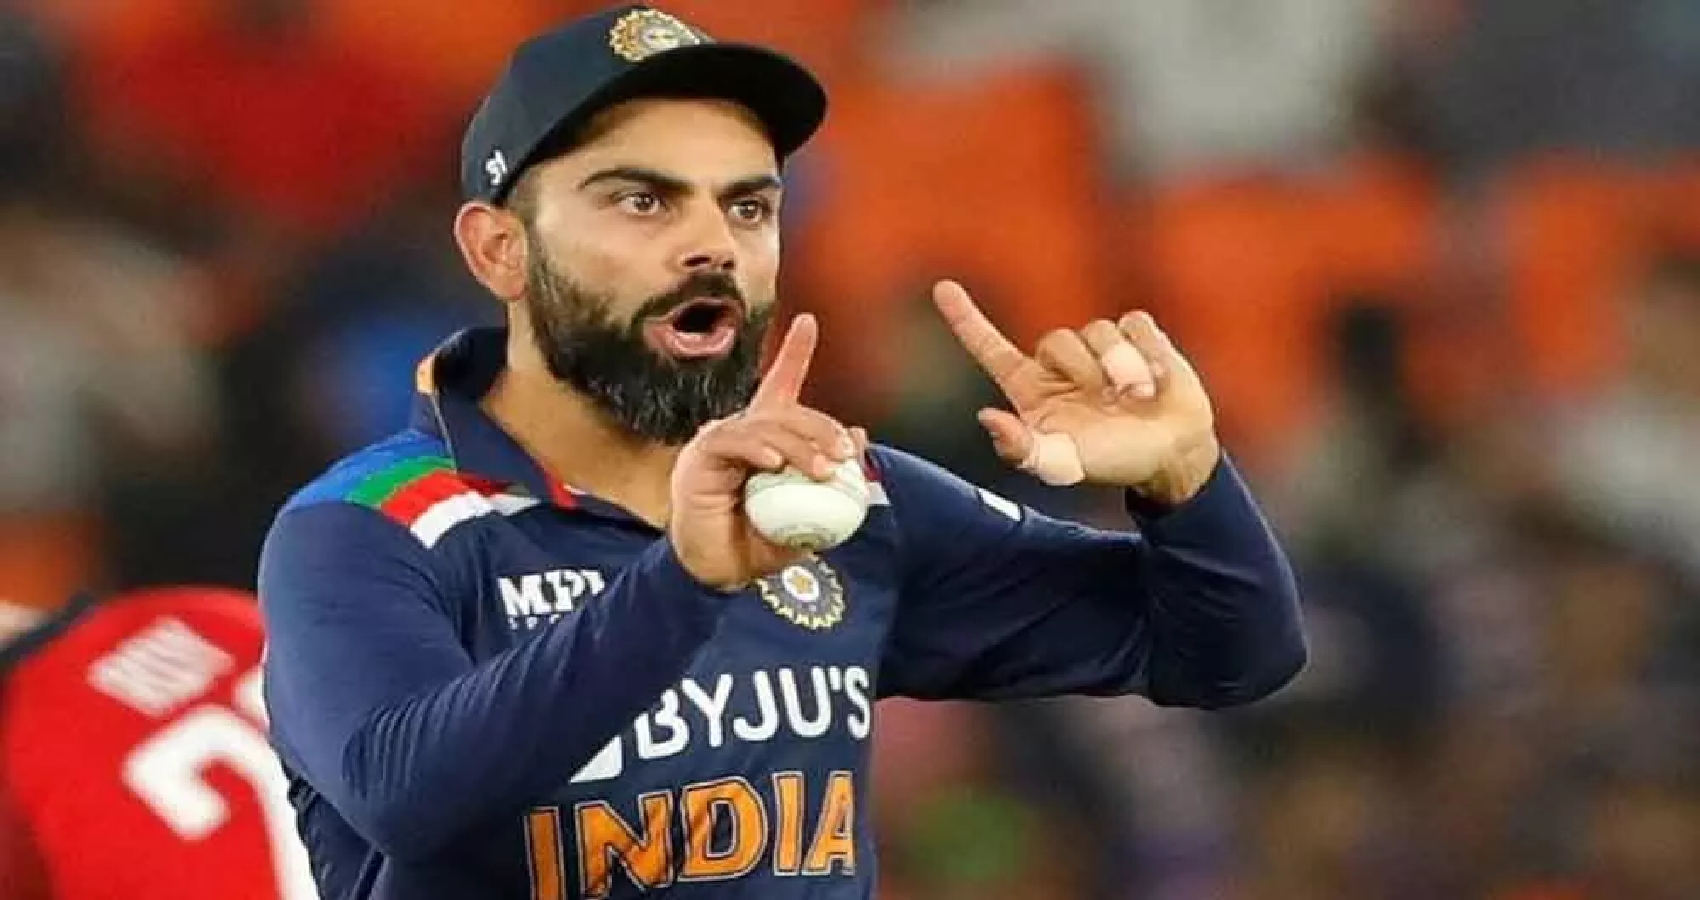 Kohli Named Wisden Cricketers' Almanack's ODI Player Of The Decade